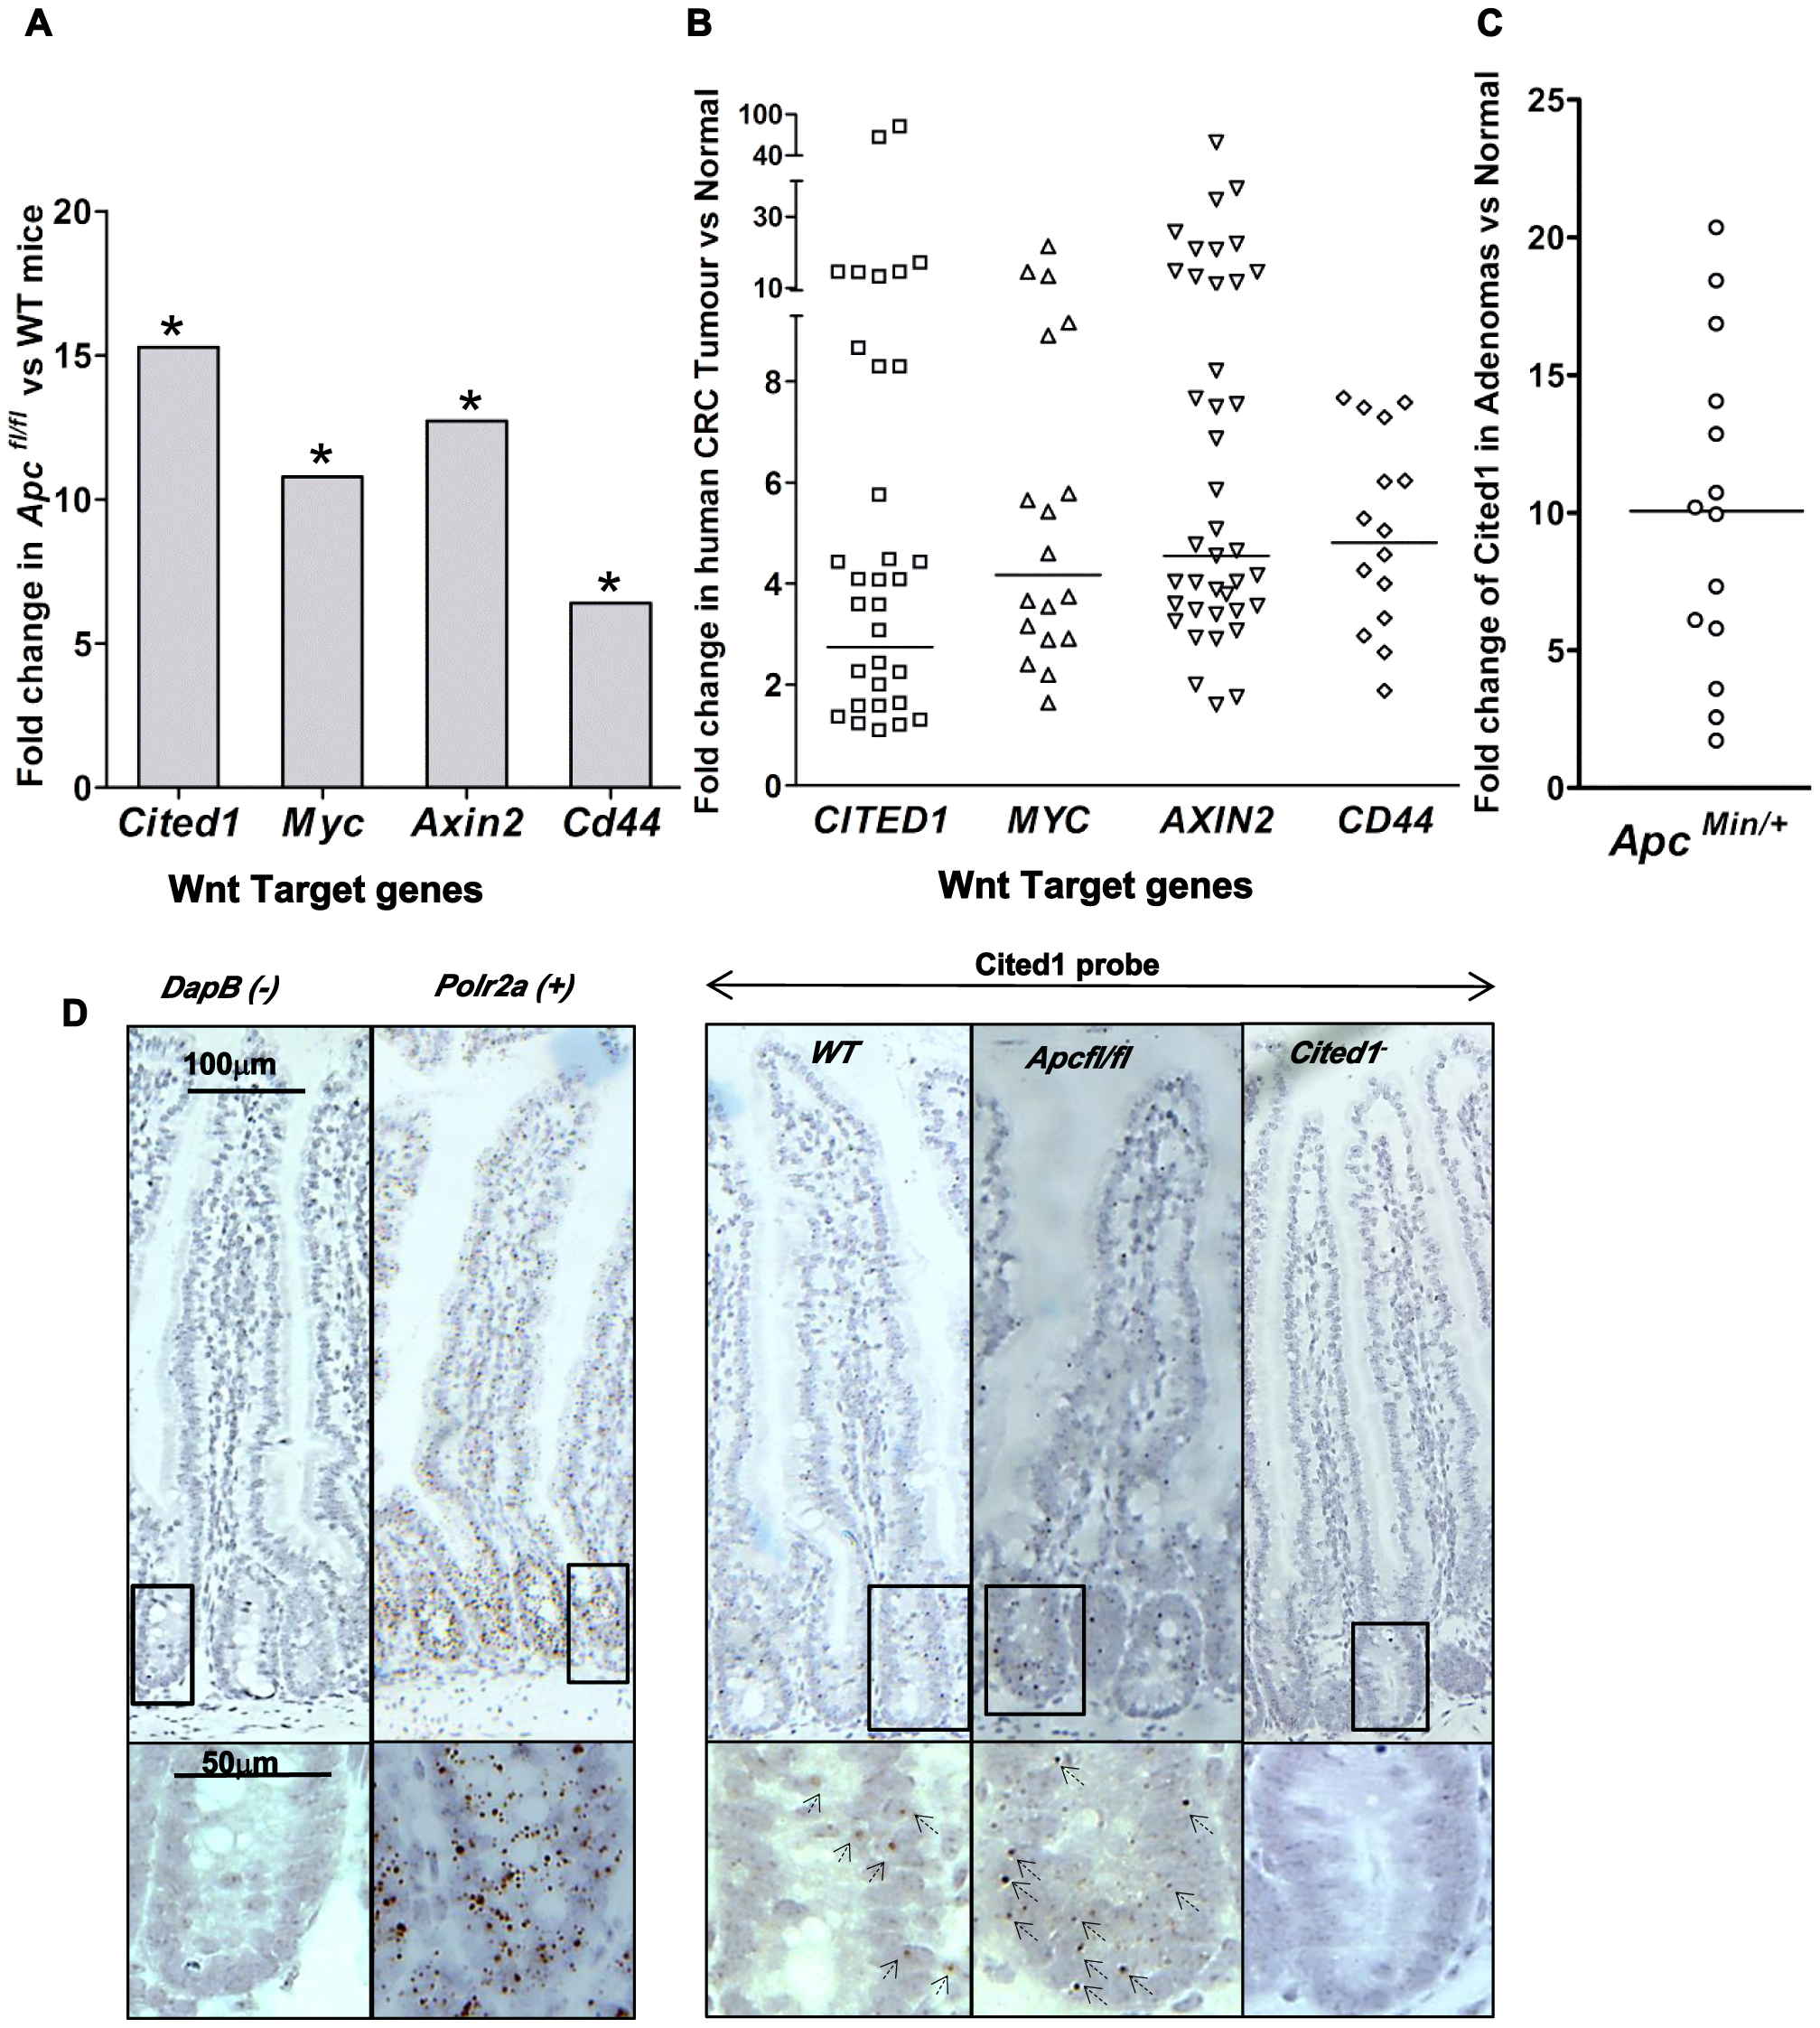 <i>Cited1</i> over-expression in <i>Apc<sup>Min/+</sup></i> mice, <i>AhCre<sup>+</sup>Apc<sup>fl/fl</sup></i> mice and human colorectal cancer.